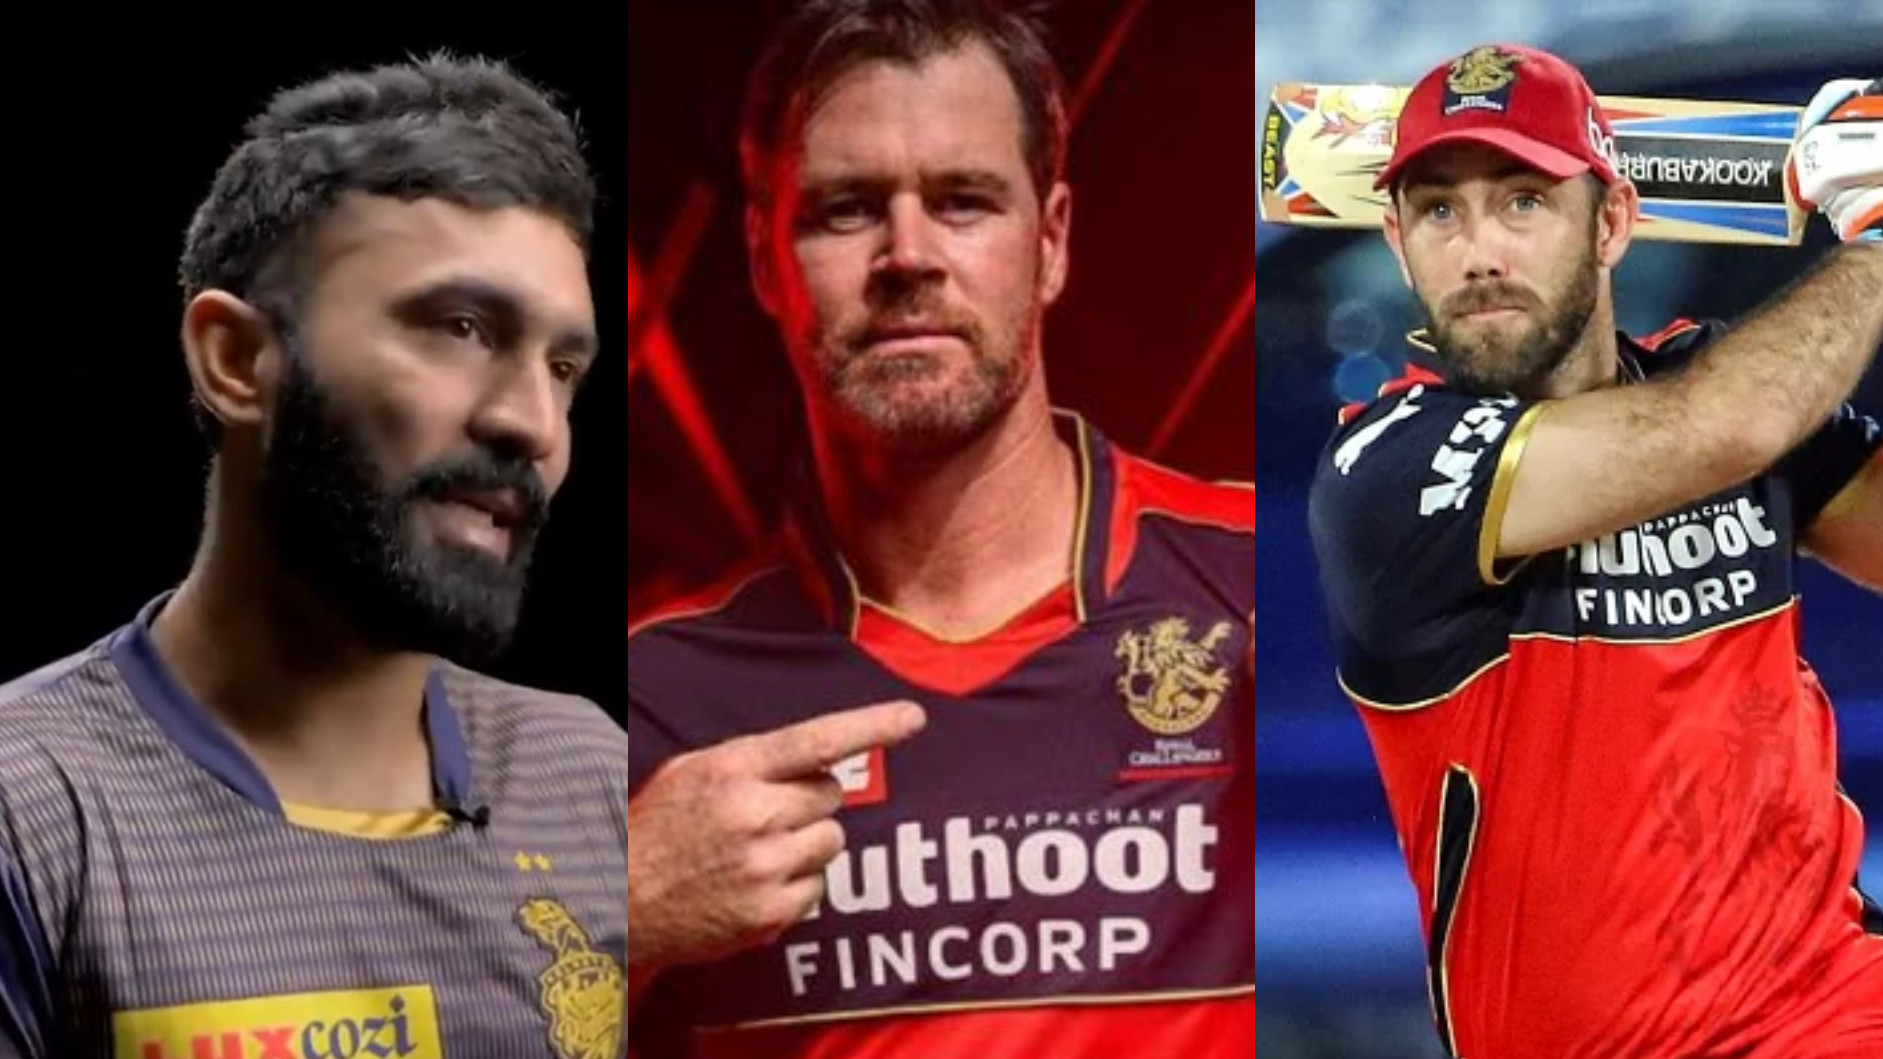 IPL 2021: WATCH- KKR condemns online abuse in a video after RCB's Dan Christian is mistreated